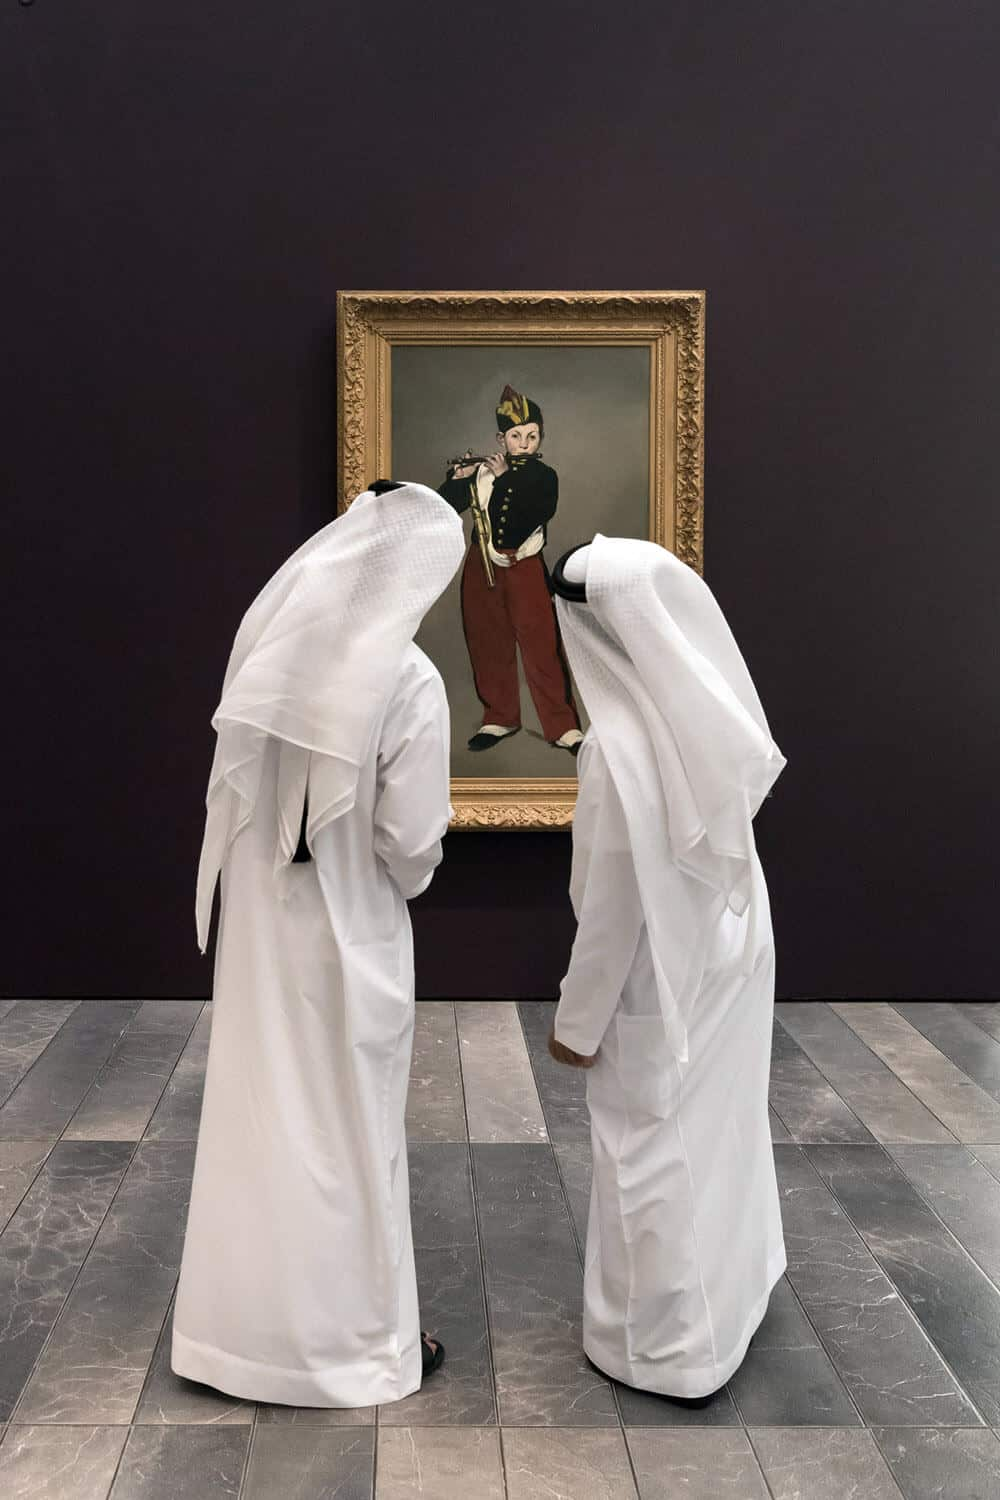 Inauguration of Louvre Abu Dhabi on November 8 2017. In front of The Gypsy, Edouard Manet. © Luc Castel